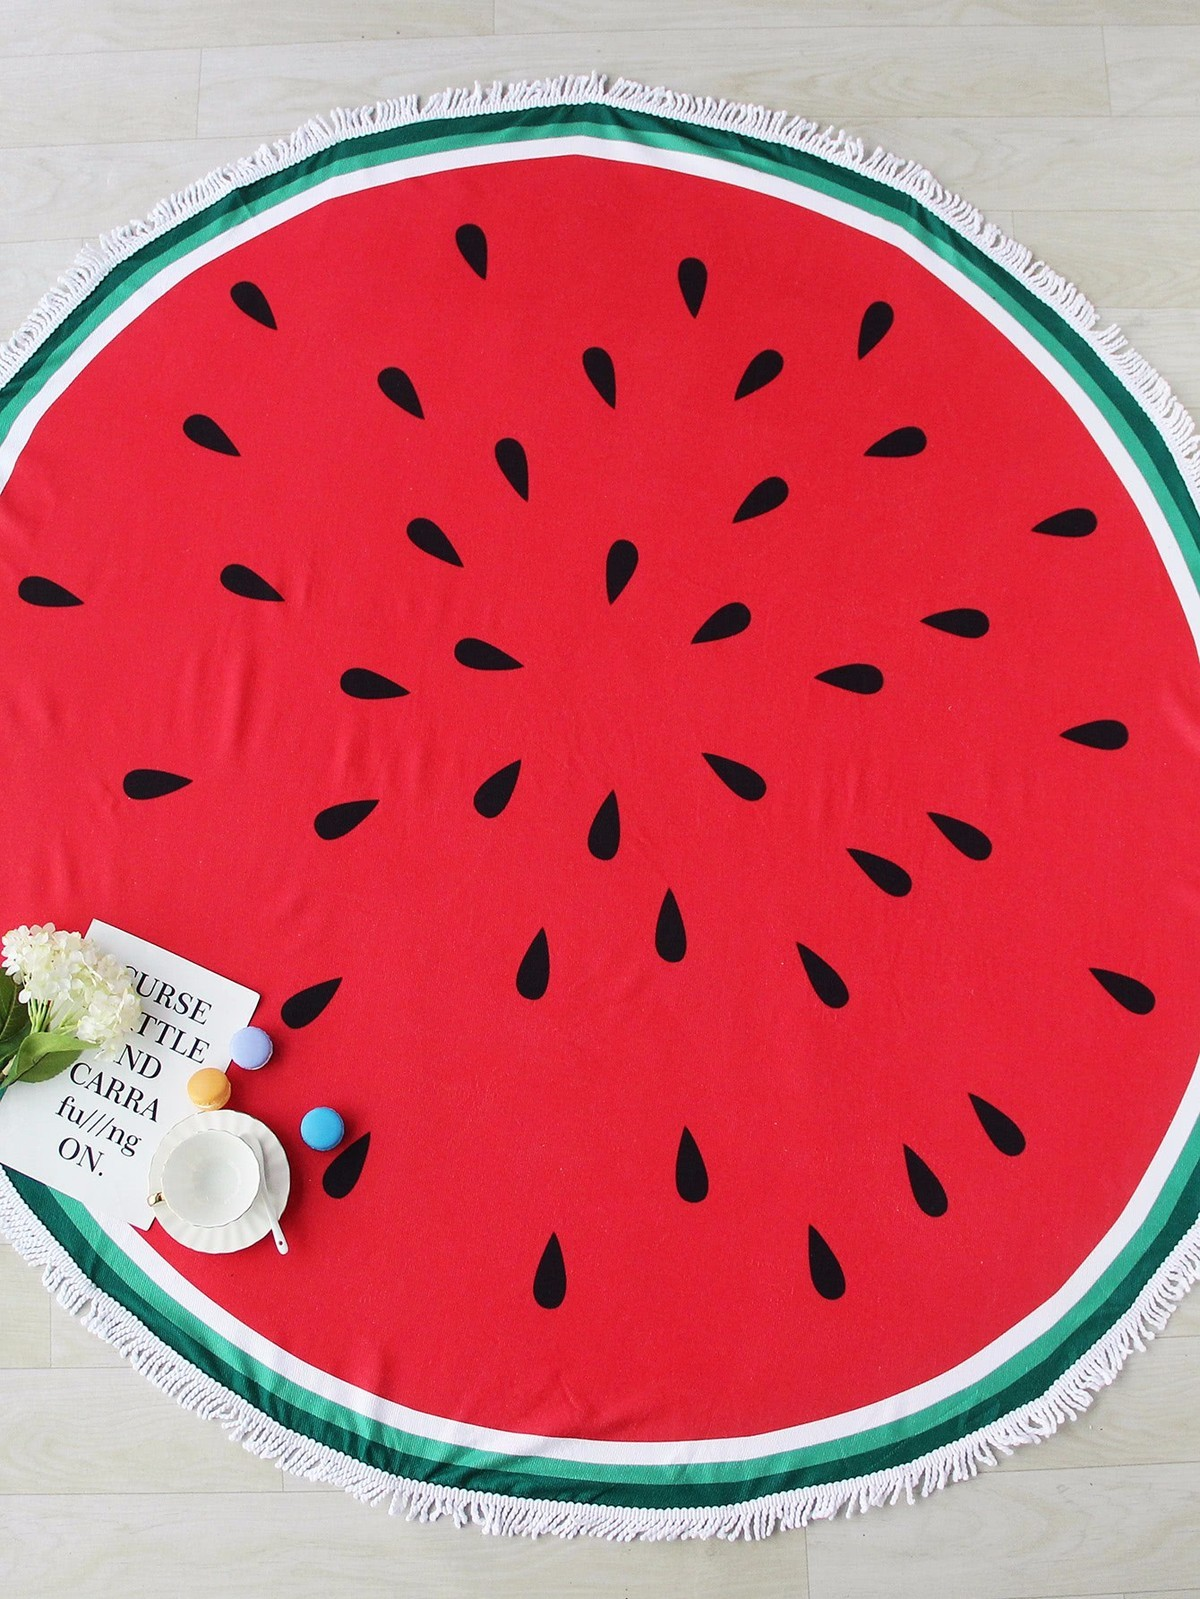 Donut Pizza Pineapple Large Round Microfiber Beach Towel Circle Tassels Watermelon Hamburger Cotton Bath Mat Serviette De Plage